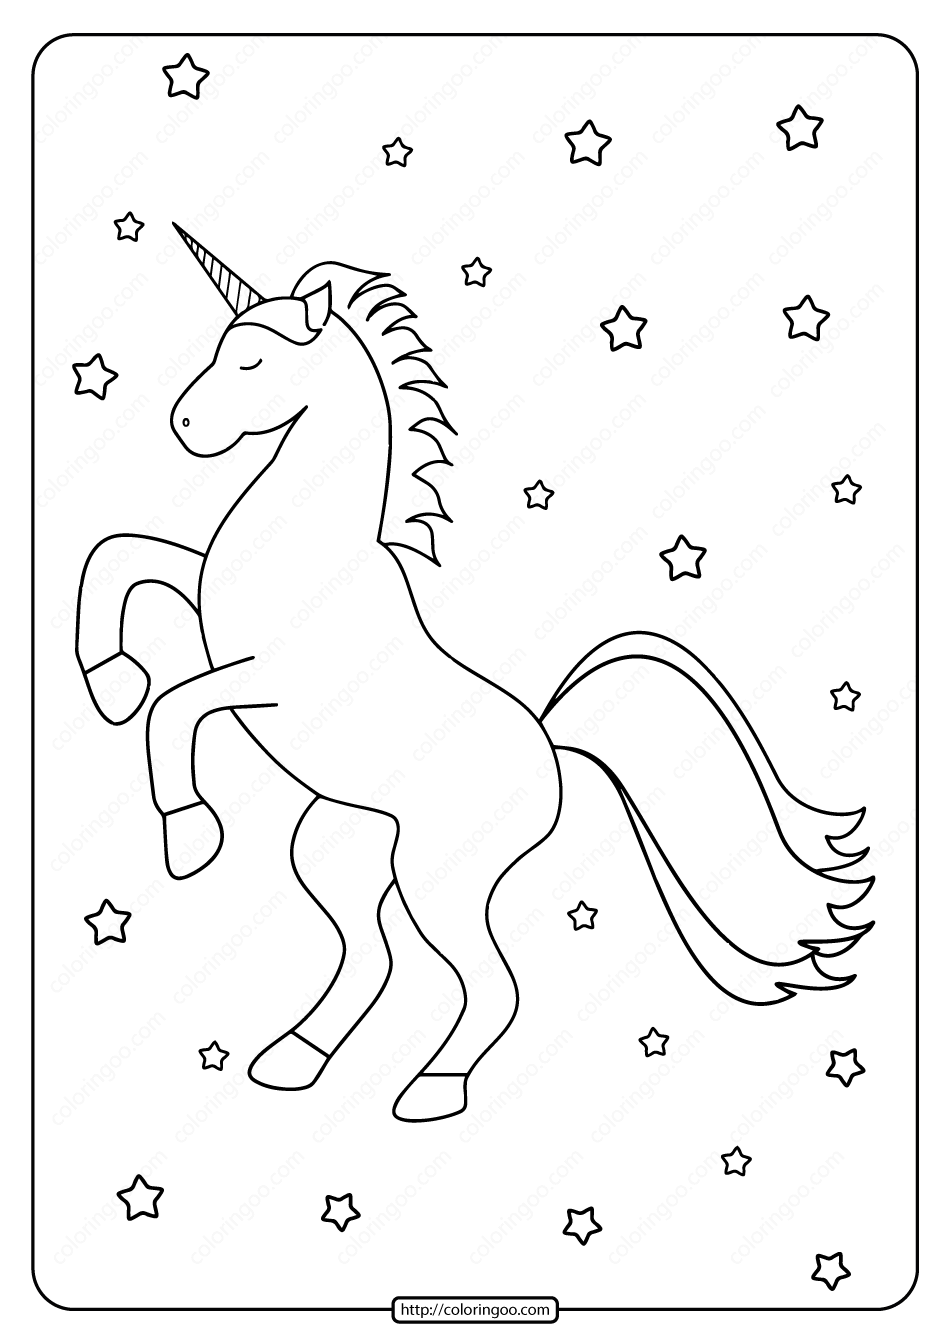 Printable Cute Unicorn with StarsColoring Page